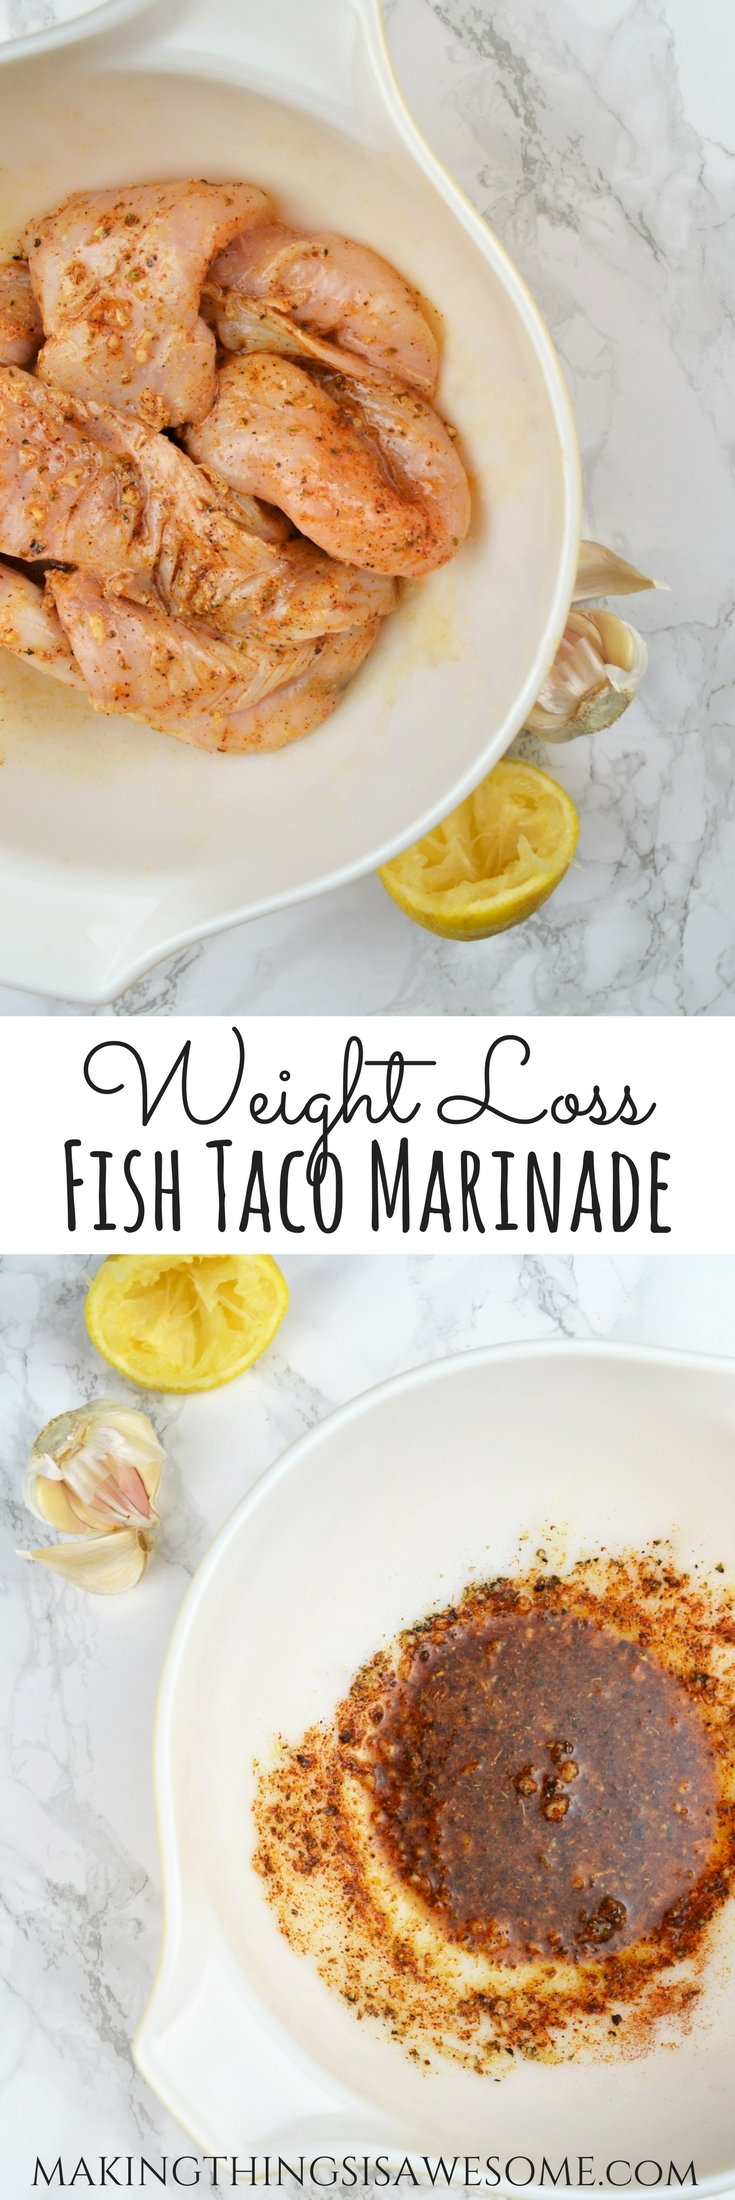 Weight Loss Fish Taco Marinade - pin